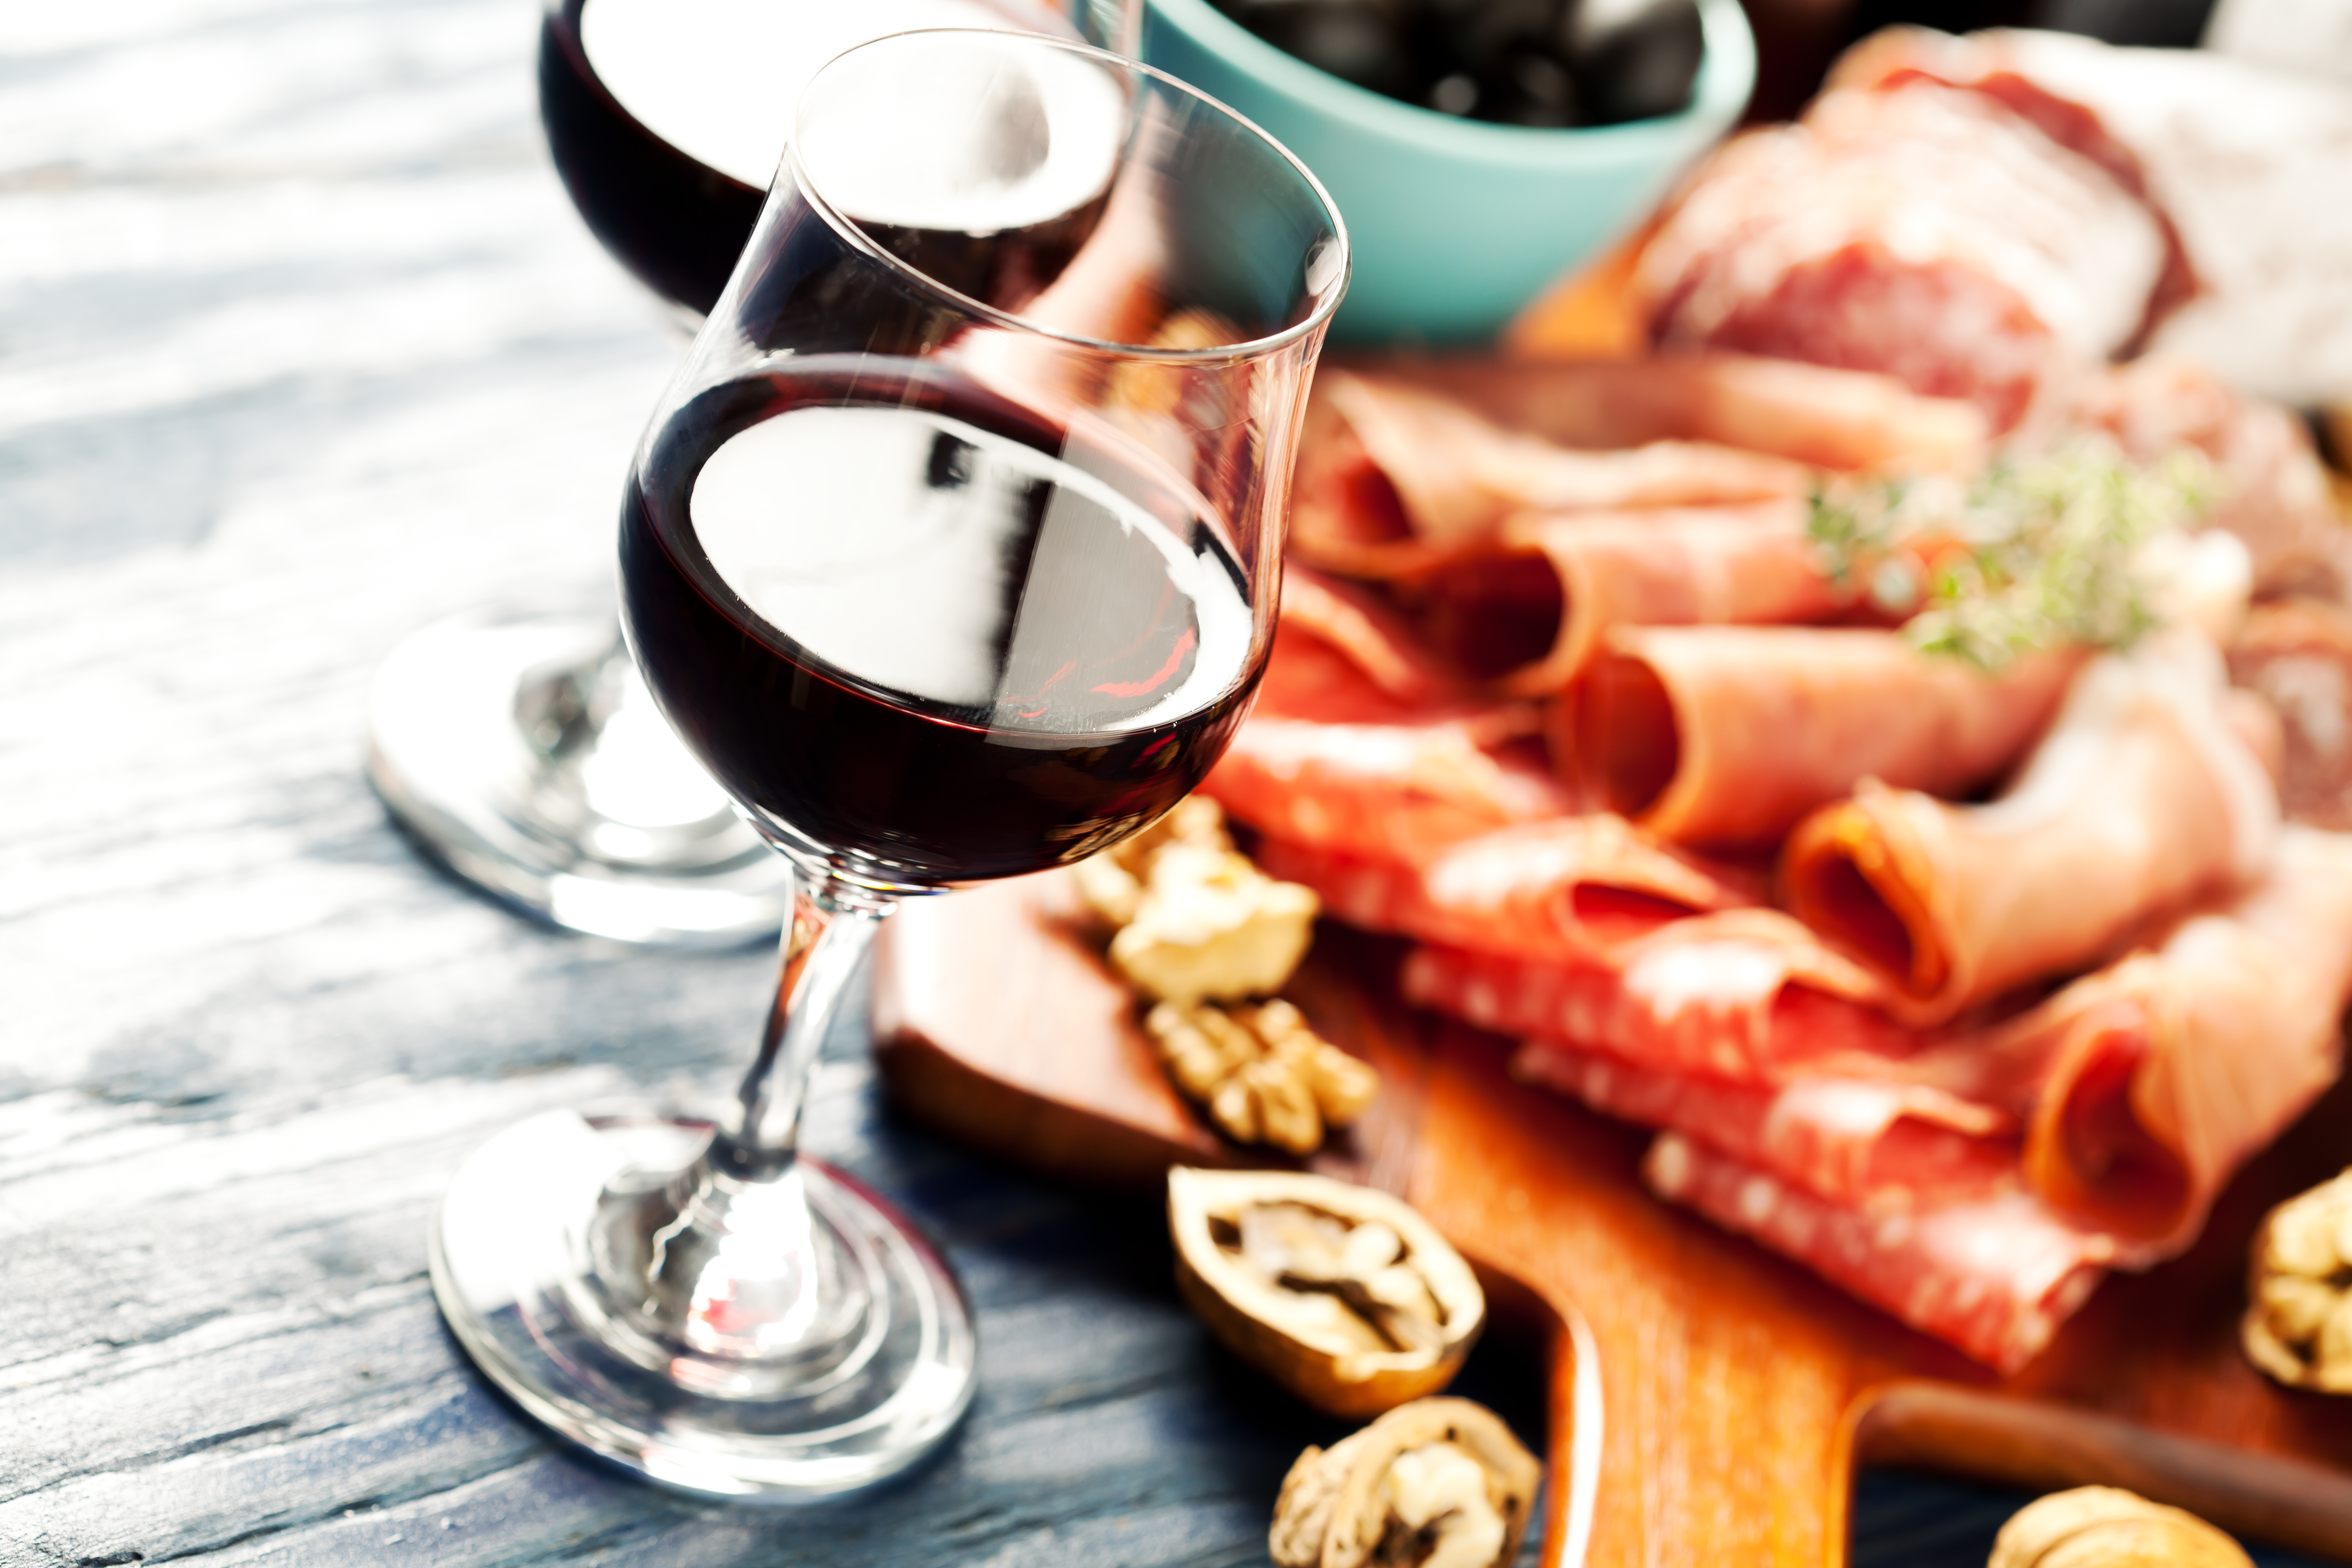 Close-up of wine and charcuterie at wine bar